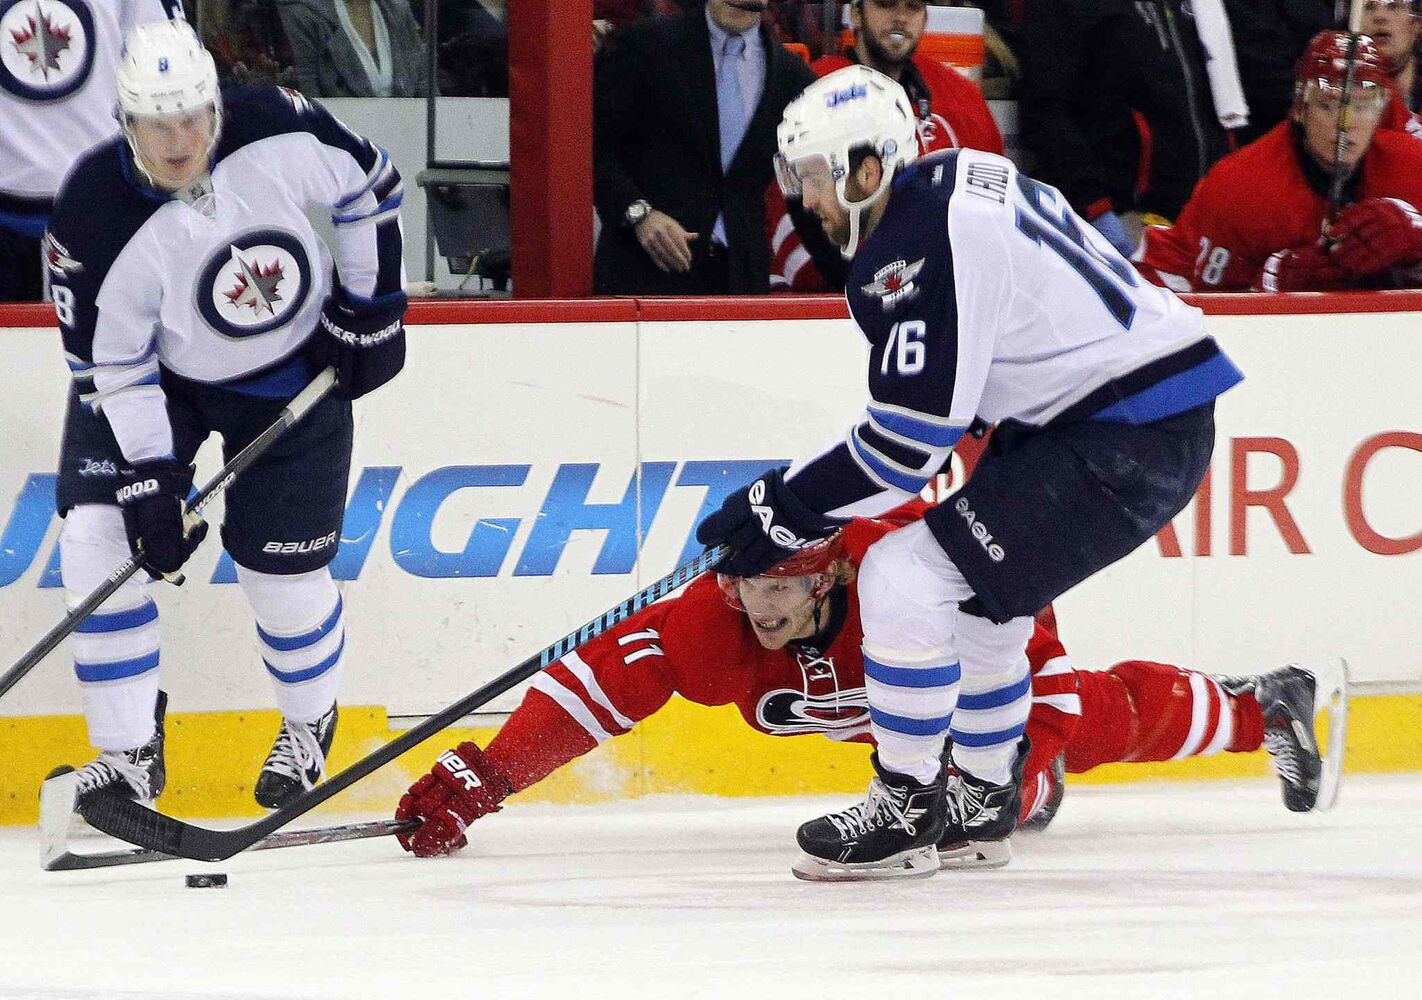 Carolina Hurricanes' Jordan Staal (11) dives for the puck against Winnipeg Jets' Jacob Trouba (8) and Andrew Ladd (16) during first period at the PNC Arena in Raleigh, N.C., on Tuesday. (Chris Seward / Raleigh News & Observer/ Tribune Media MCT)